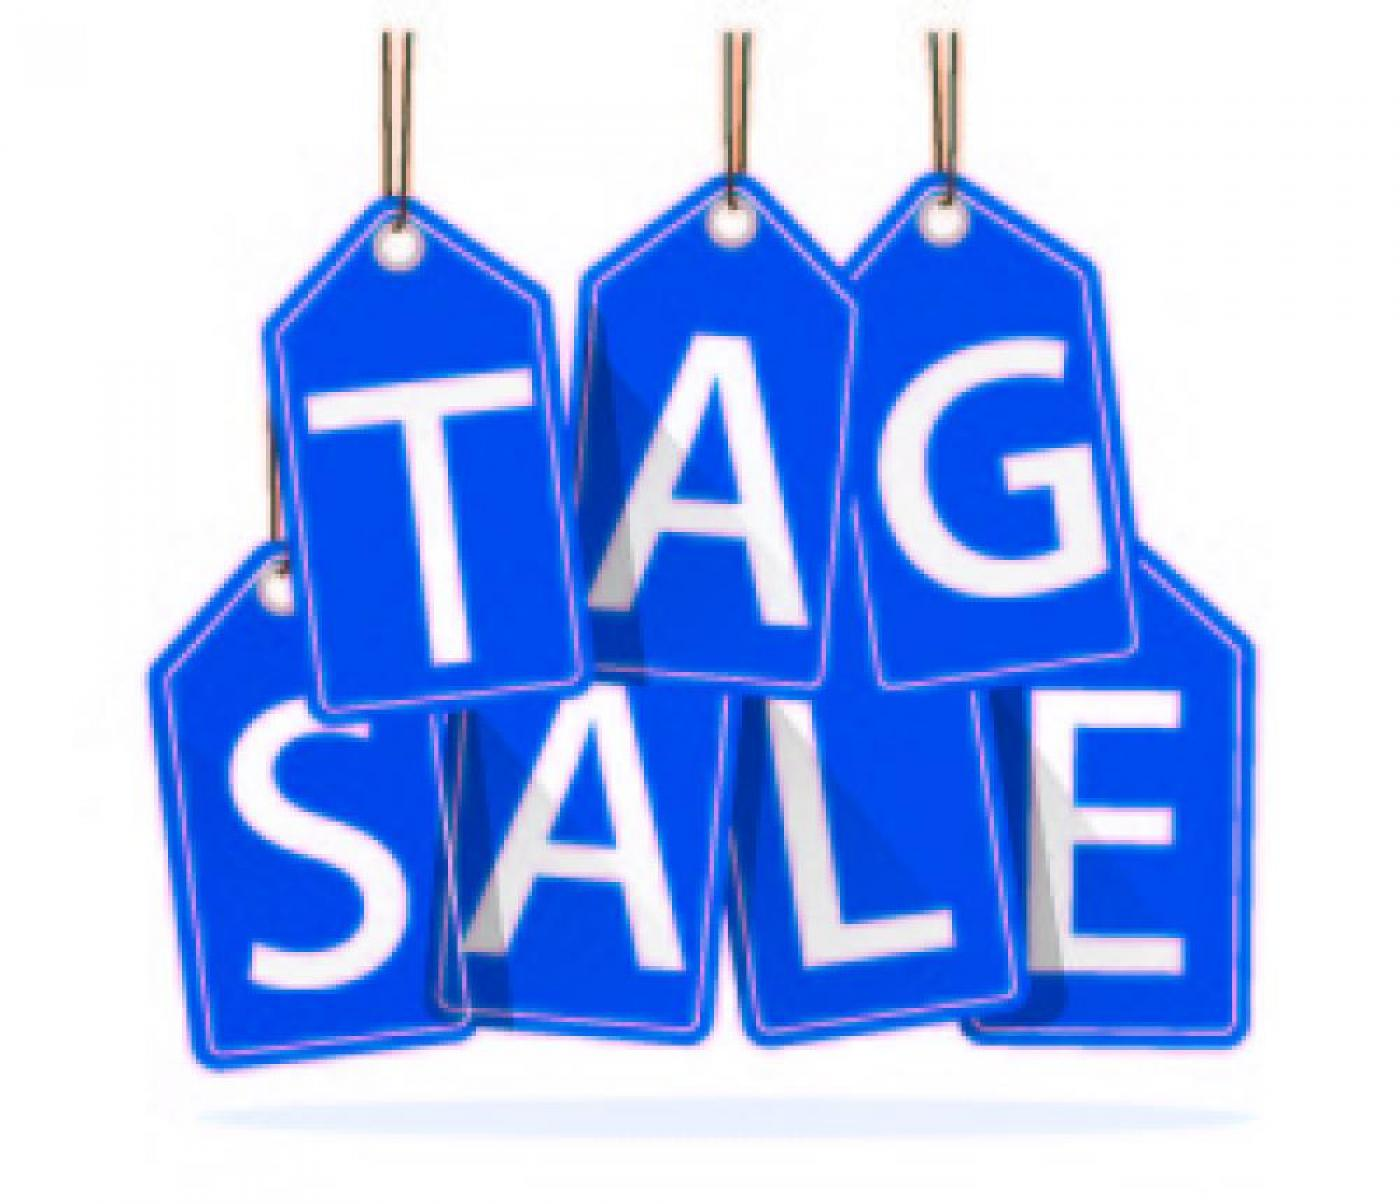 <h2>12th Annual Tag Sale Fundraiser</h2> <p>50% off Sunday July 26th 10:00 - 12:00<br /><br /><em>D